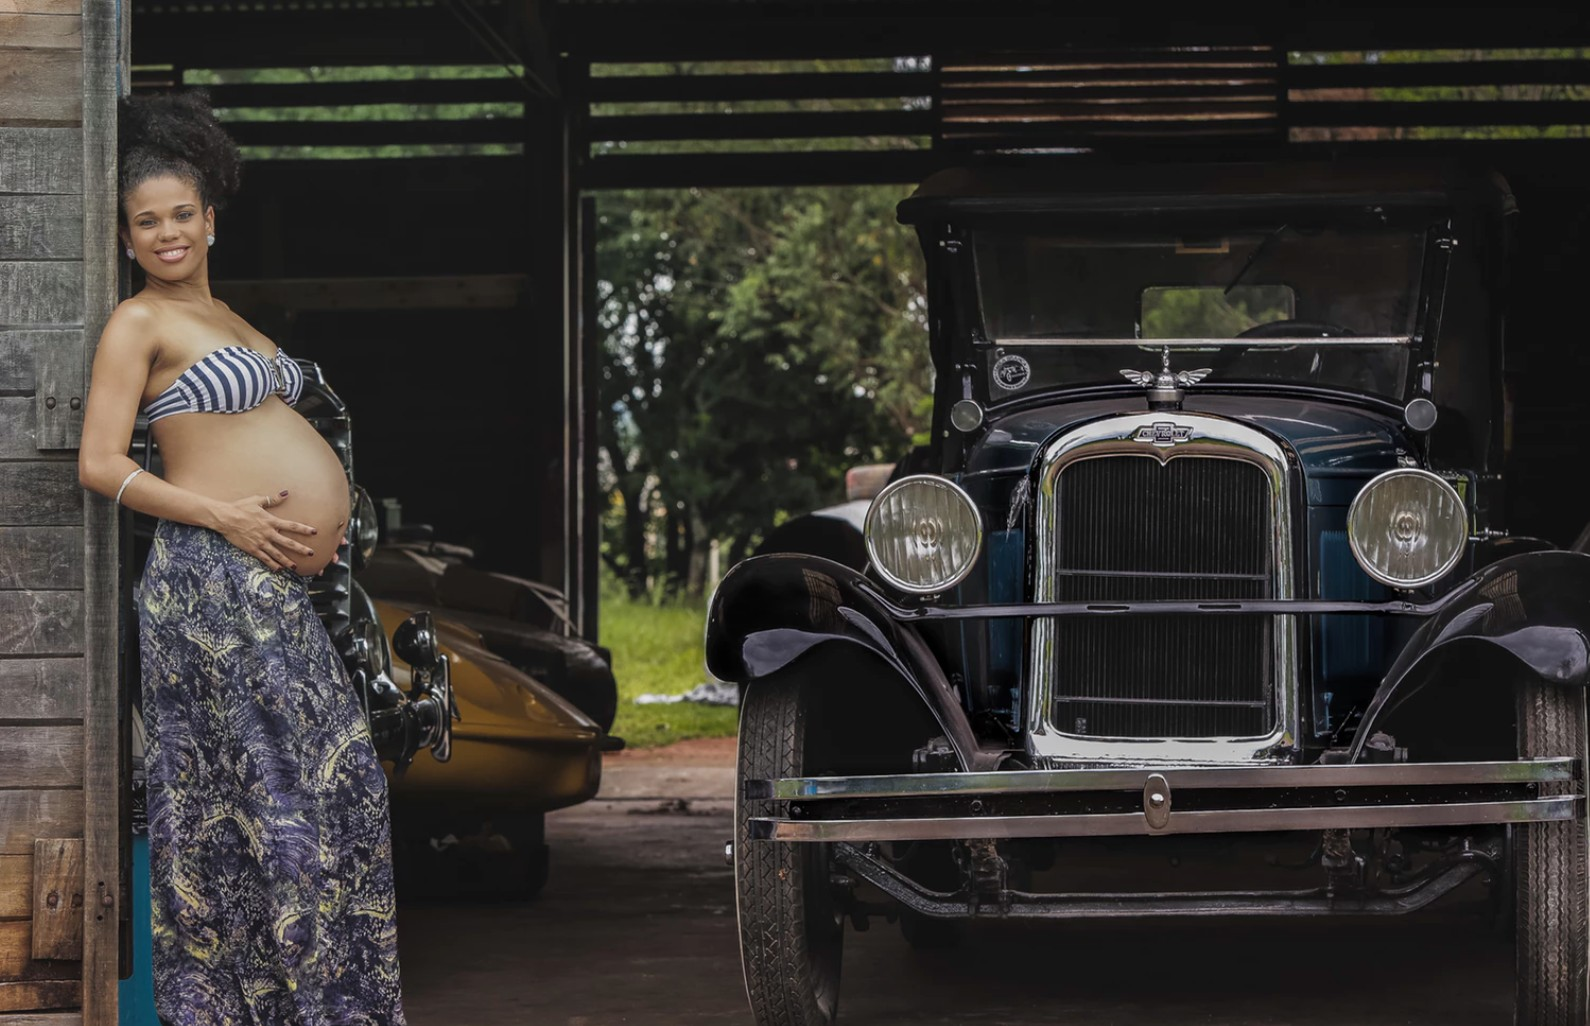 A pregnant woman poses by a classic car